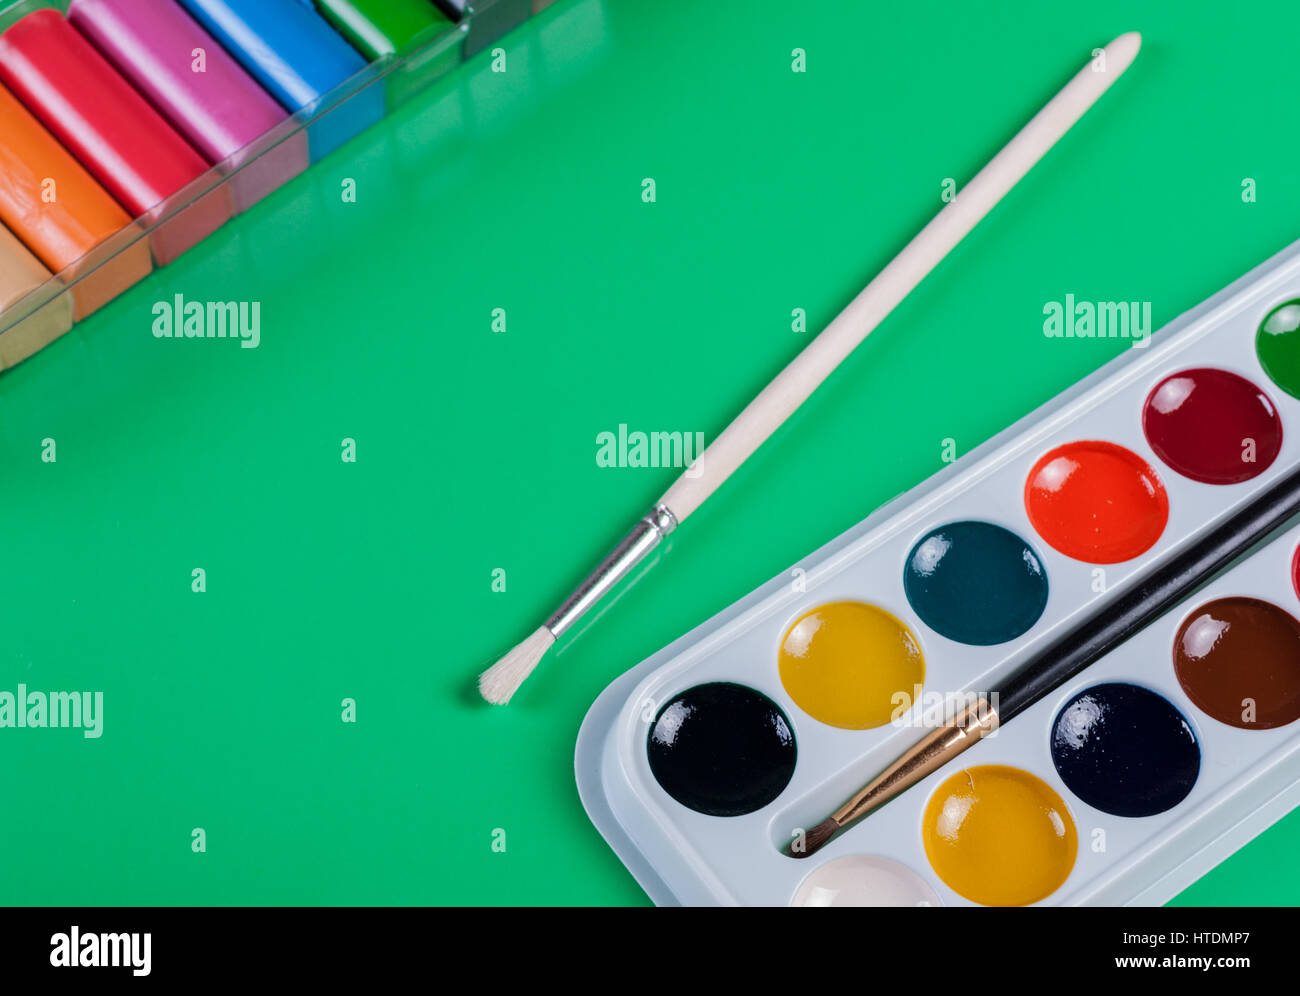 Watercolor paints and plasticine on a green background. For children's creativity - Stock Image